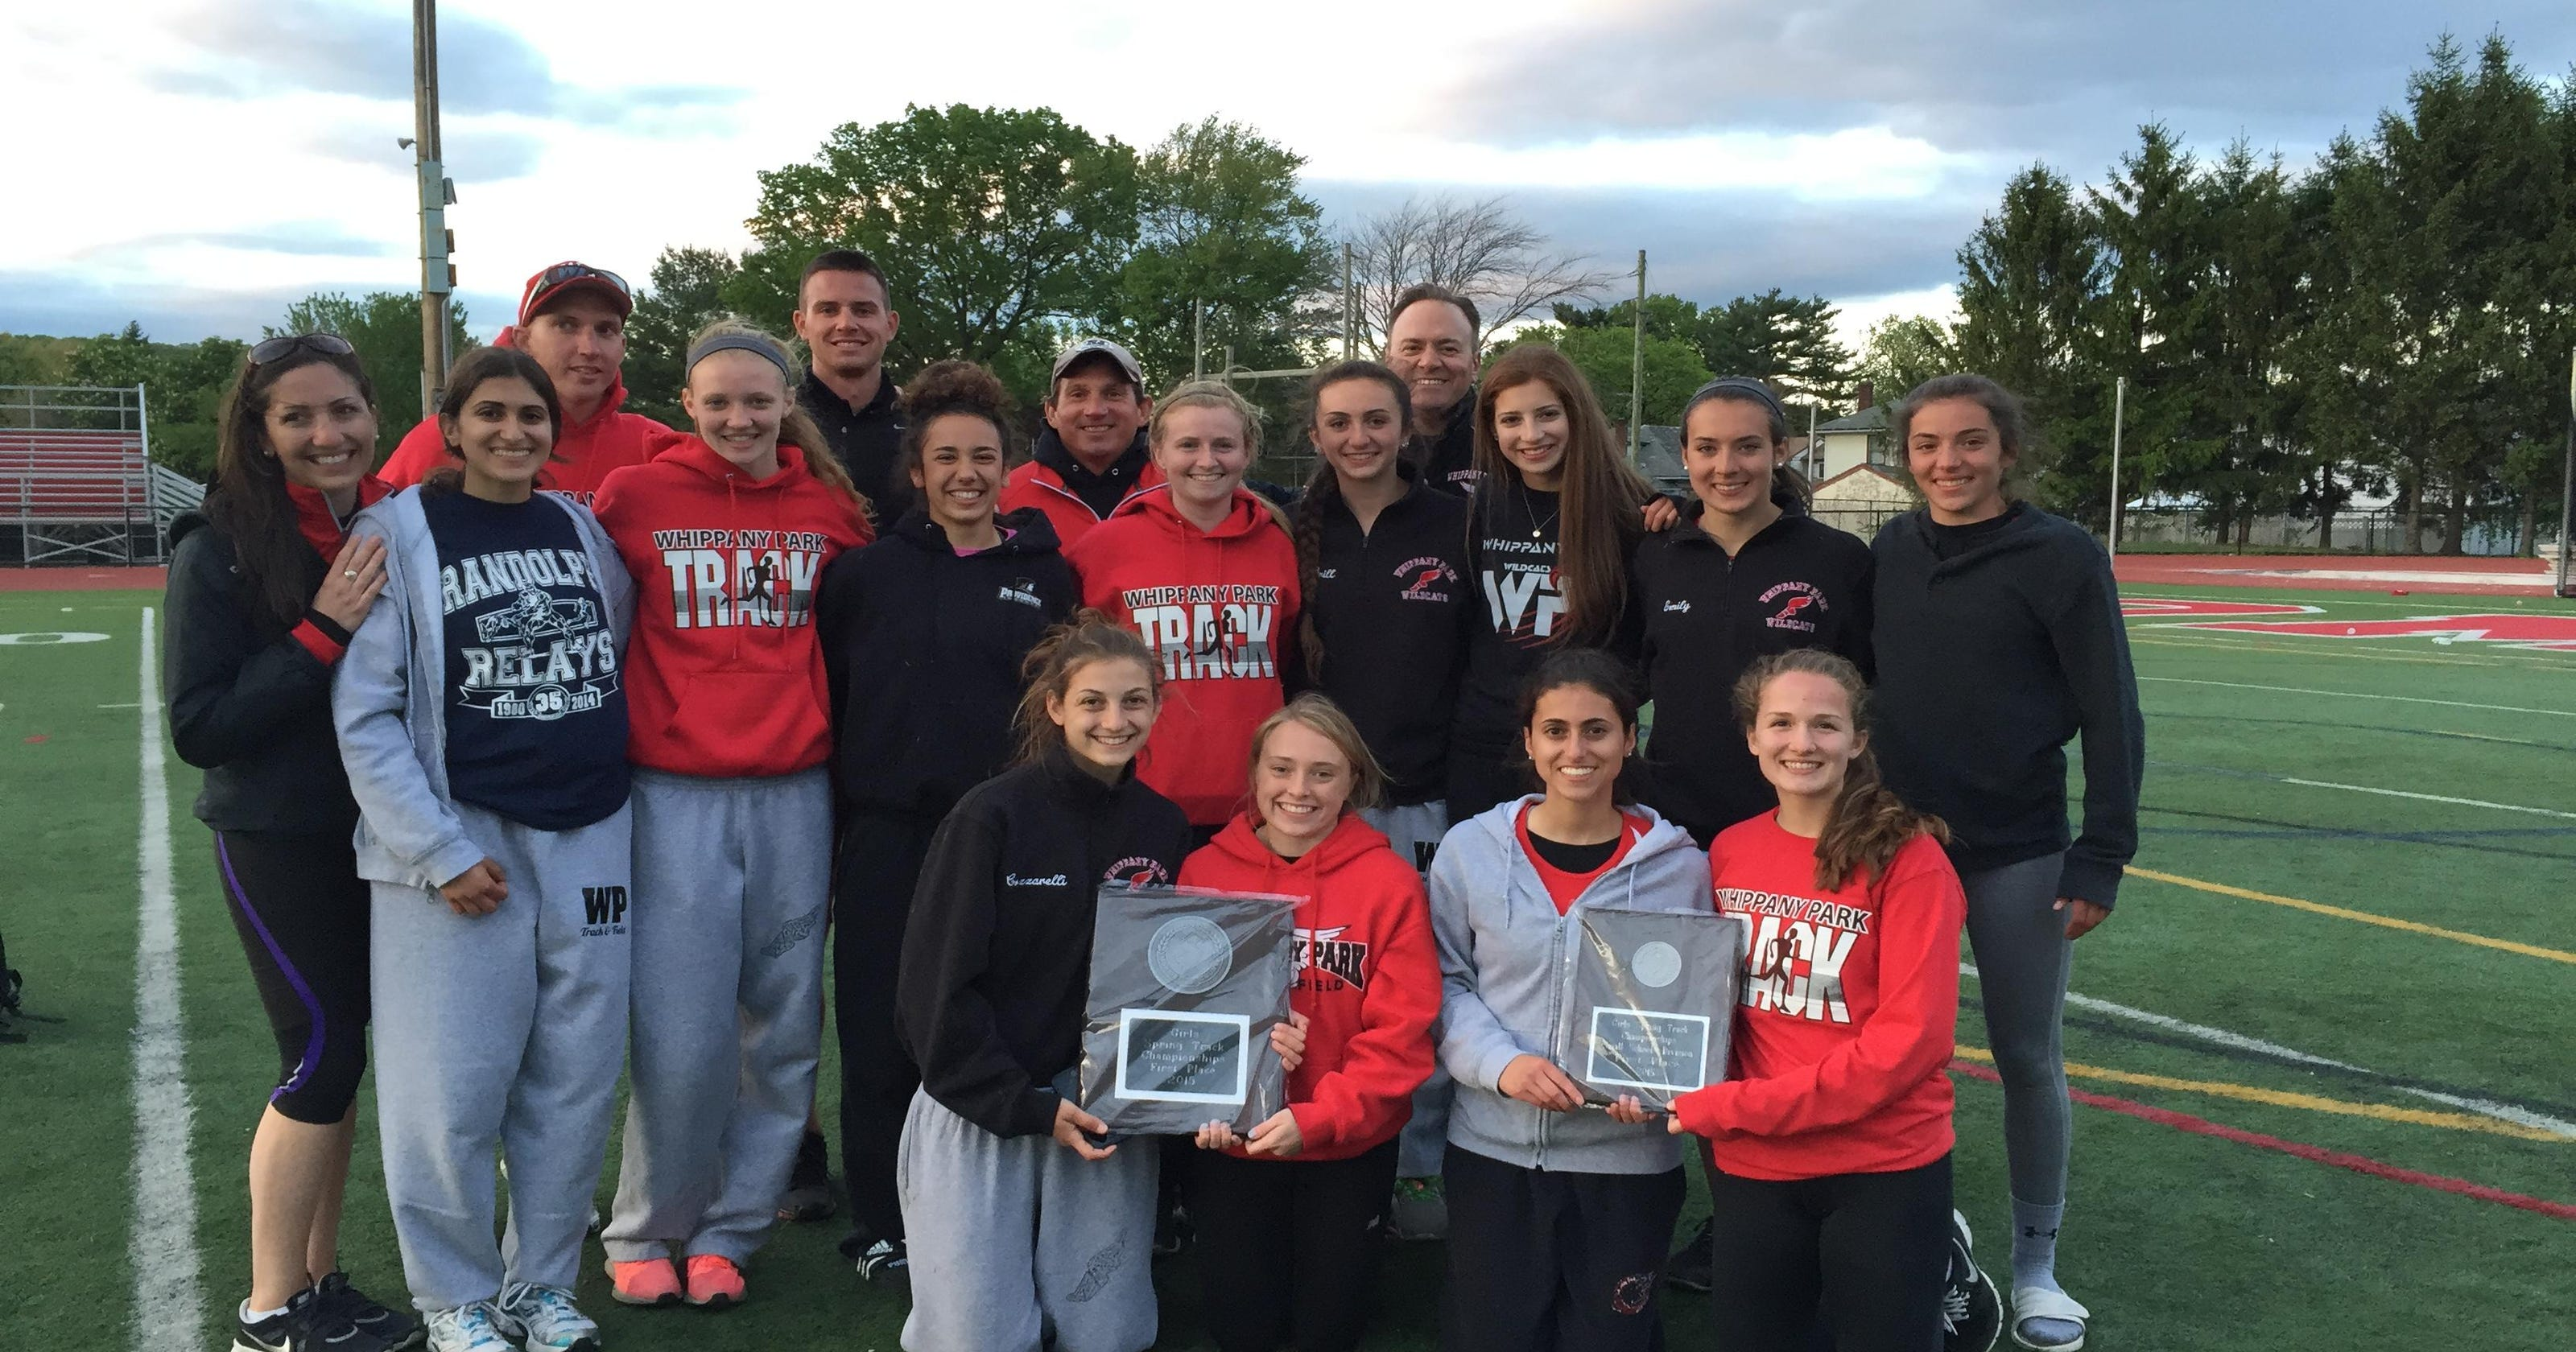 Girls track and field team-by-team preview capsules